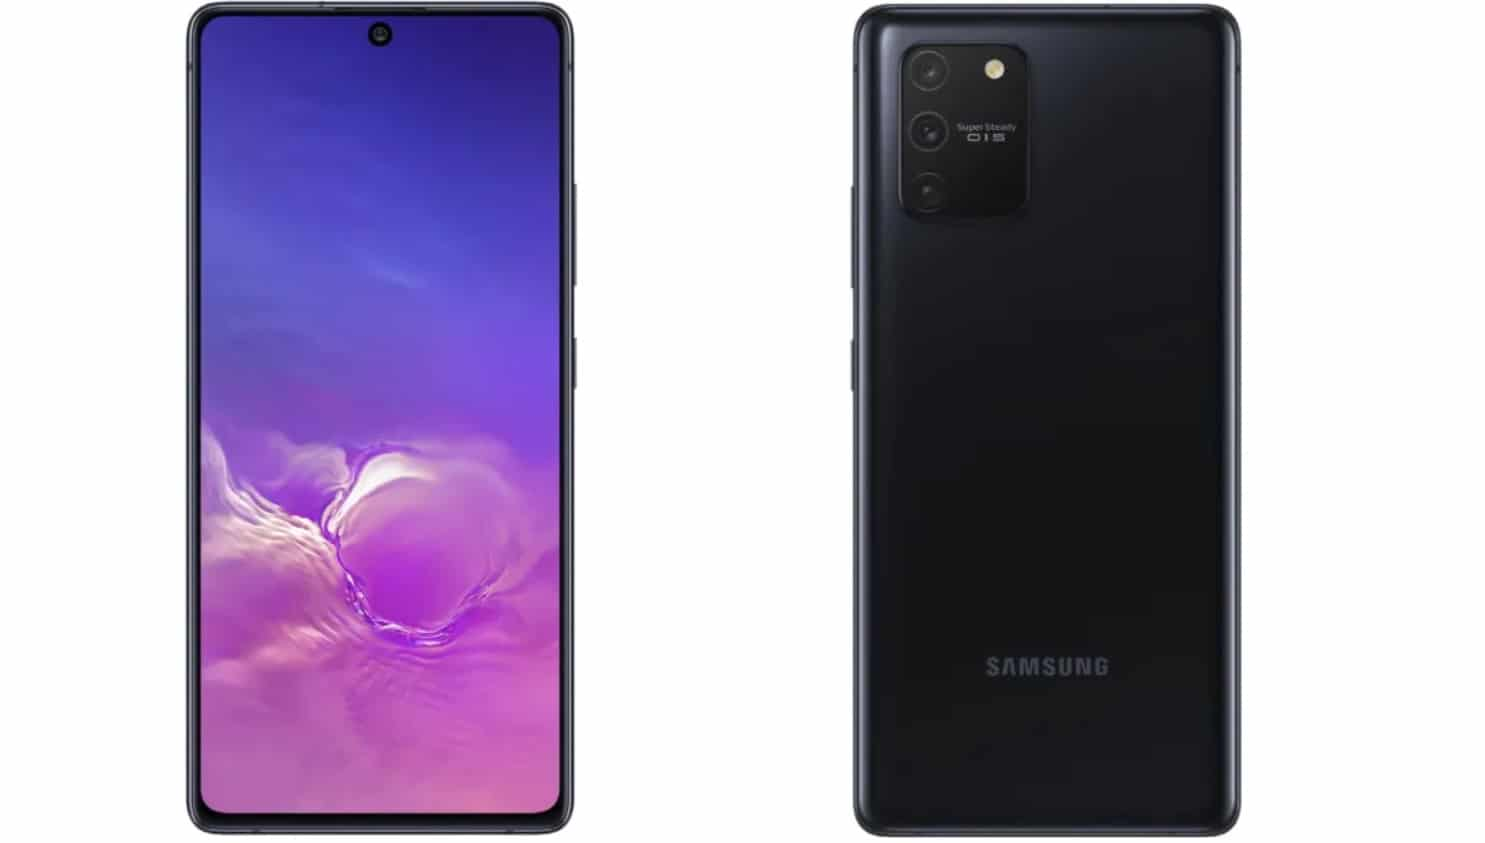 Samsung Galaxy S10 Lite Launched At An Exciting Price Of ₹39,999